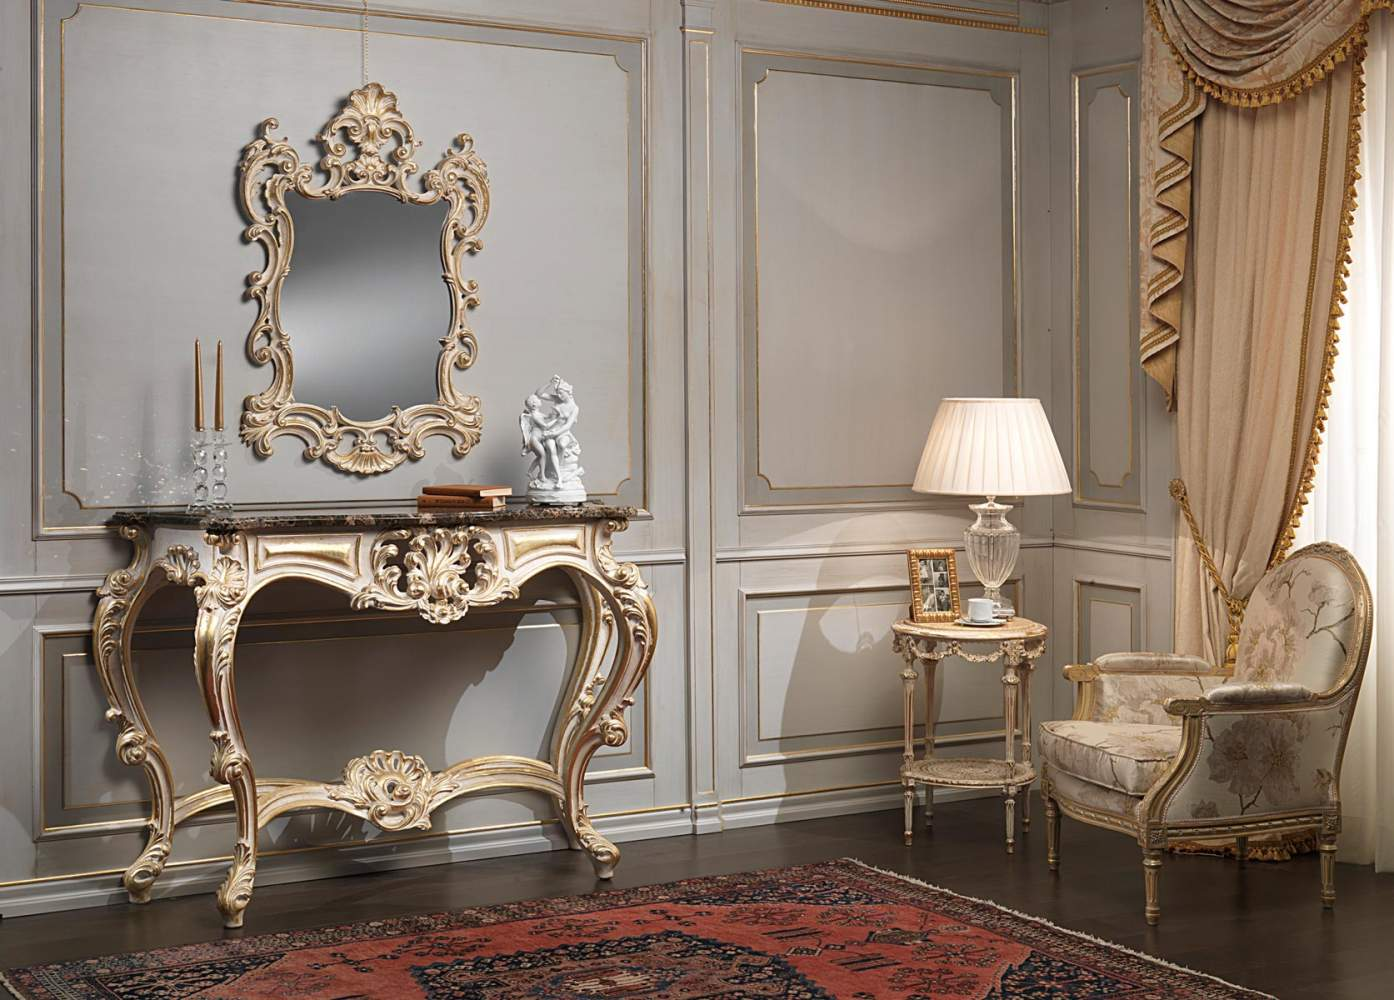 Classic white over gold console and mirror